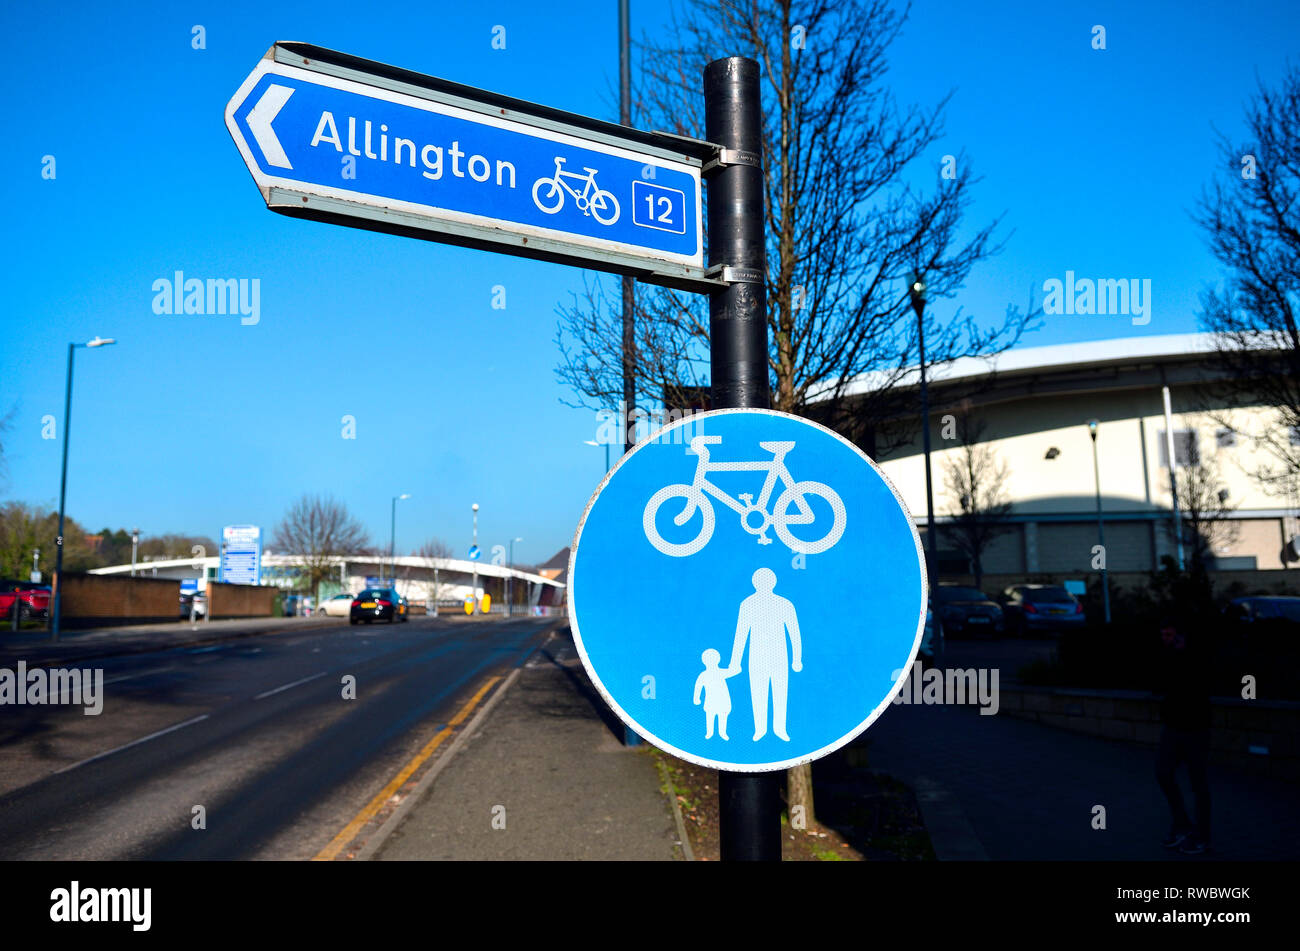 Maidstone, Kent, England, UK. Roadsigns - cycle path and pedestrians - cycle route to Allington - Stock Image